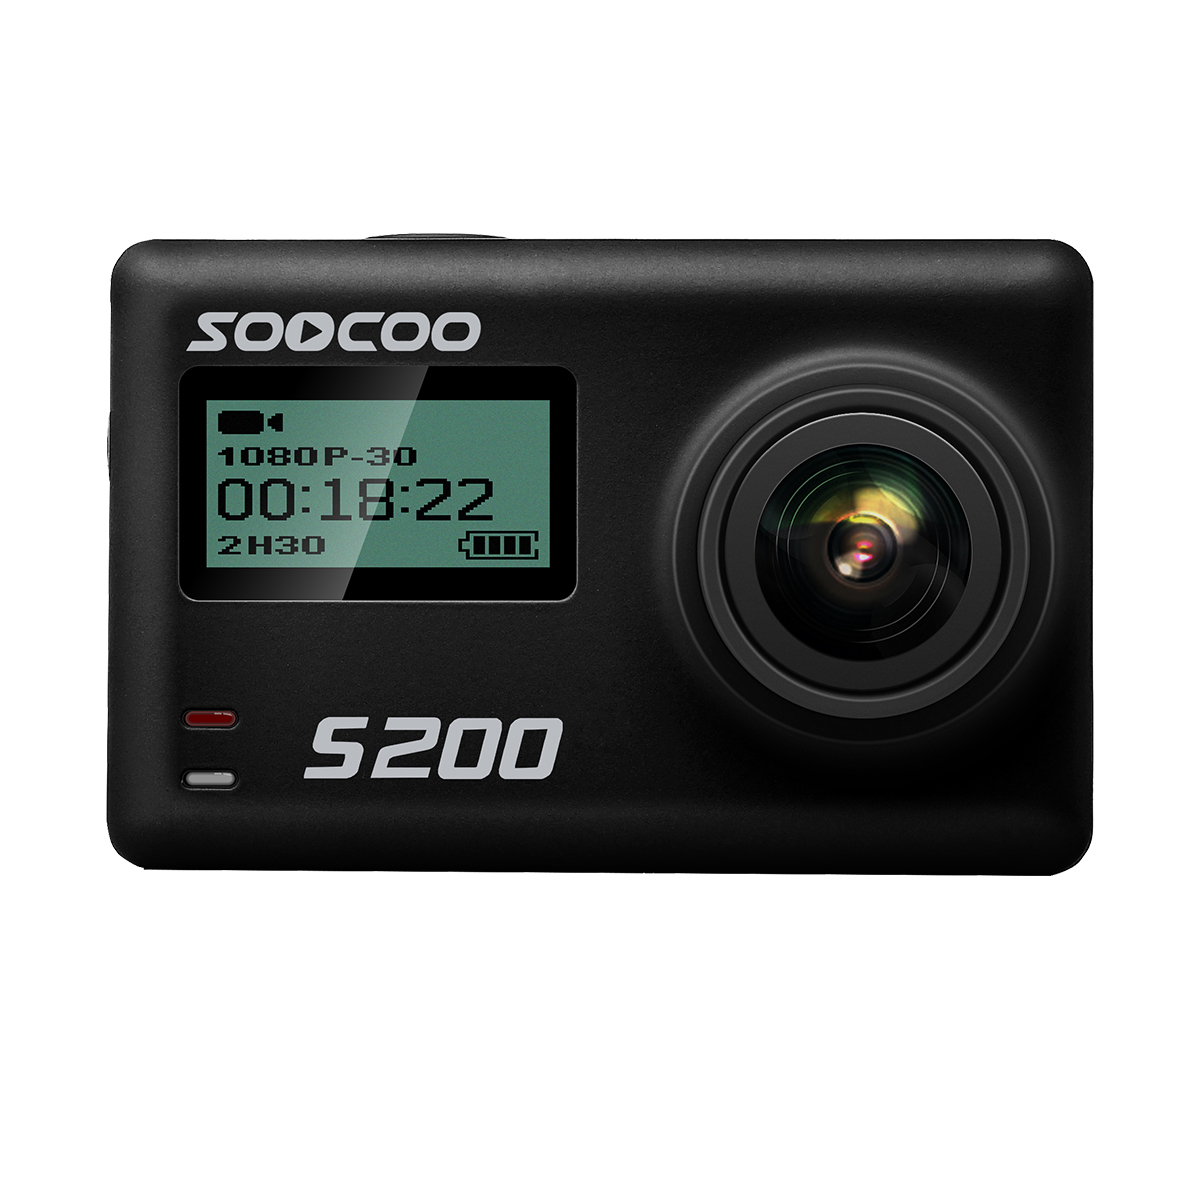 SOOCOO S200 Action Kamera Ultra HD 4 karat NTK96660 + IMX078 mit WiFi Gryo Voice control externe mic GPS 2,45 zoll touch lcd